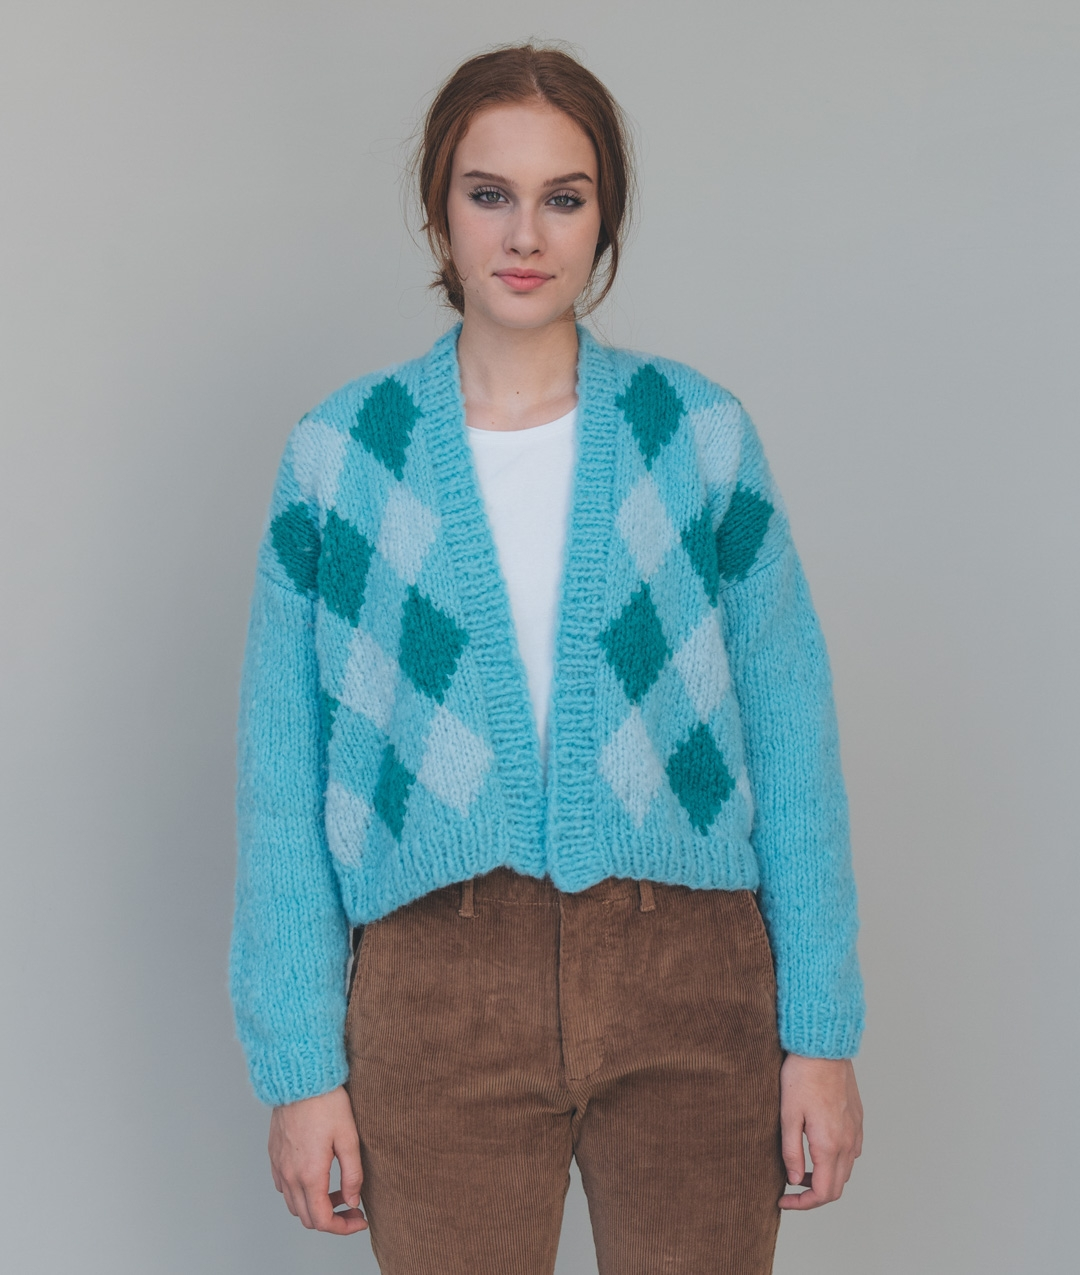 Sweaters and Tops - WoolCardigans and Vests  - Wool - ICE CREAM CARDI - 1